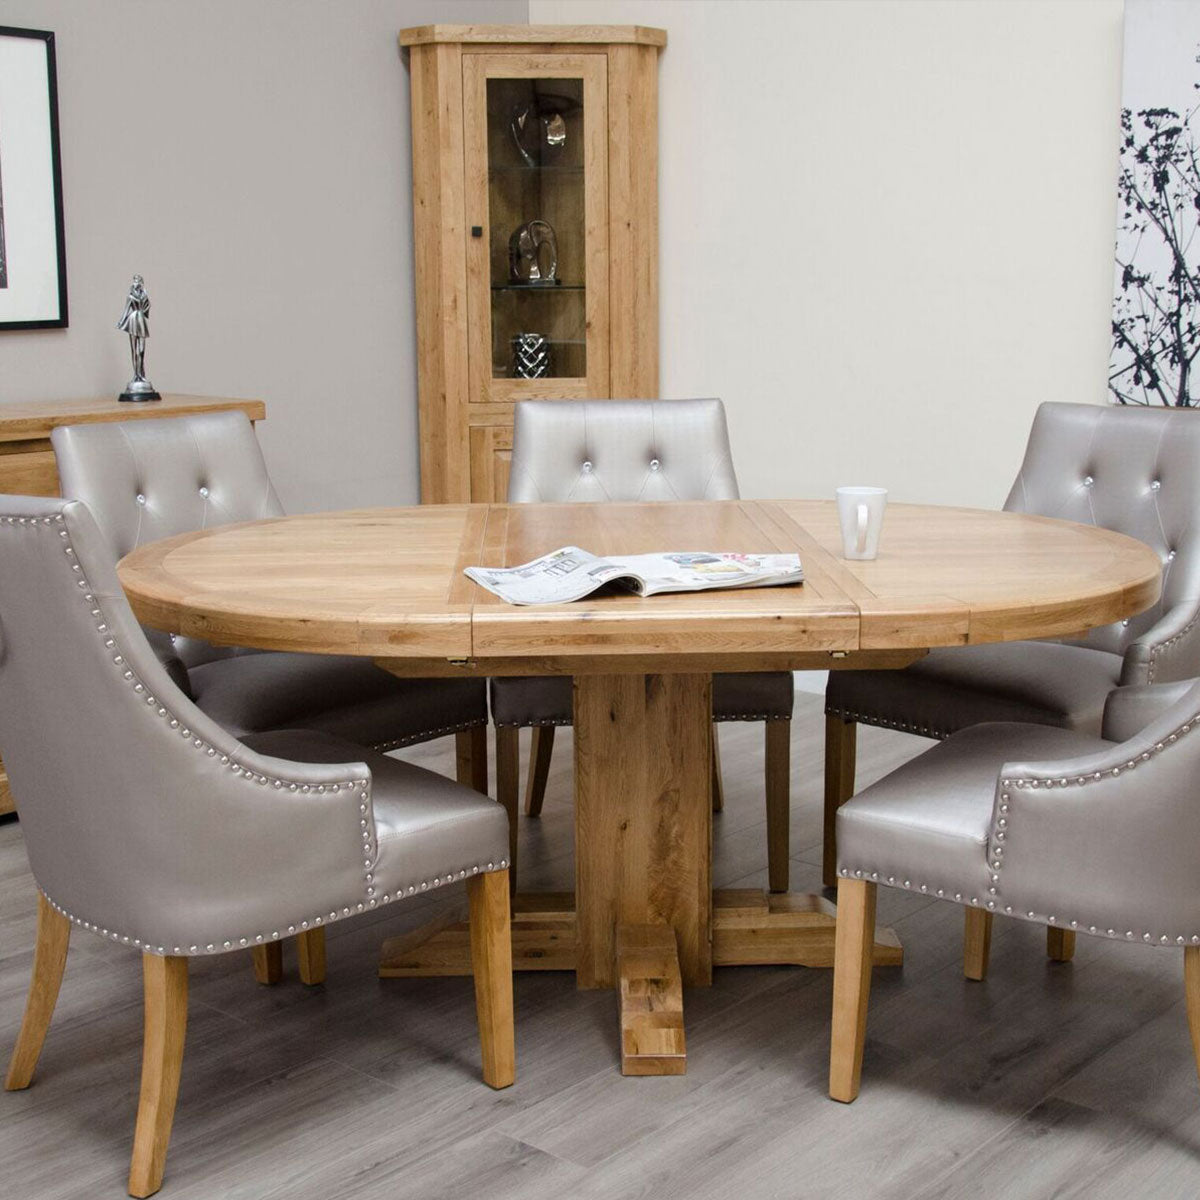 Elegance Oak Round Extending Table 1250mm Diameter / 1250mm x 1800mm Extended